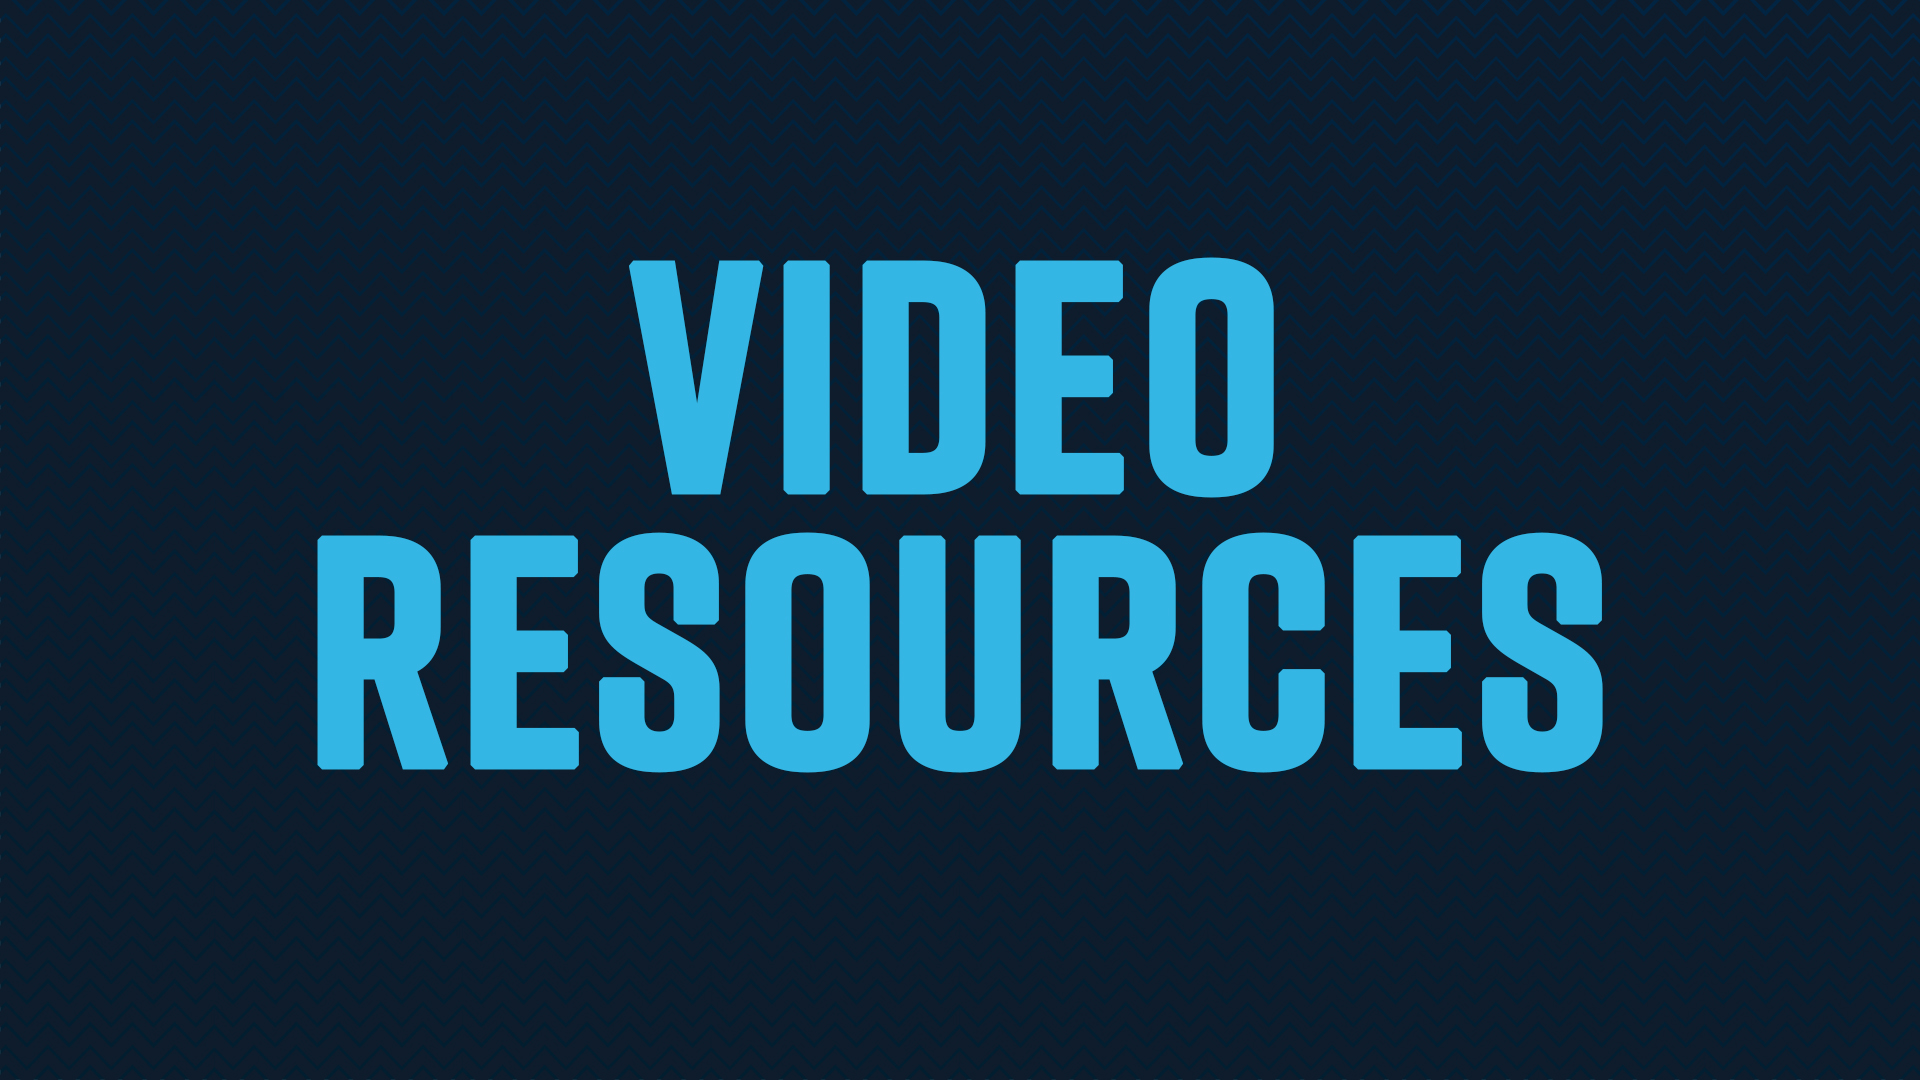 videoresources_social